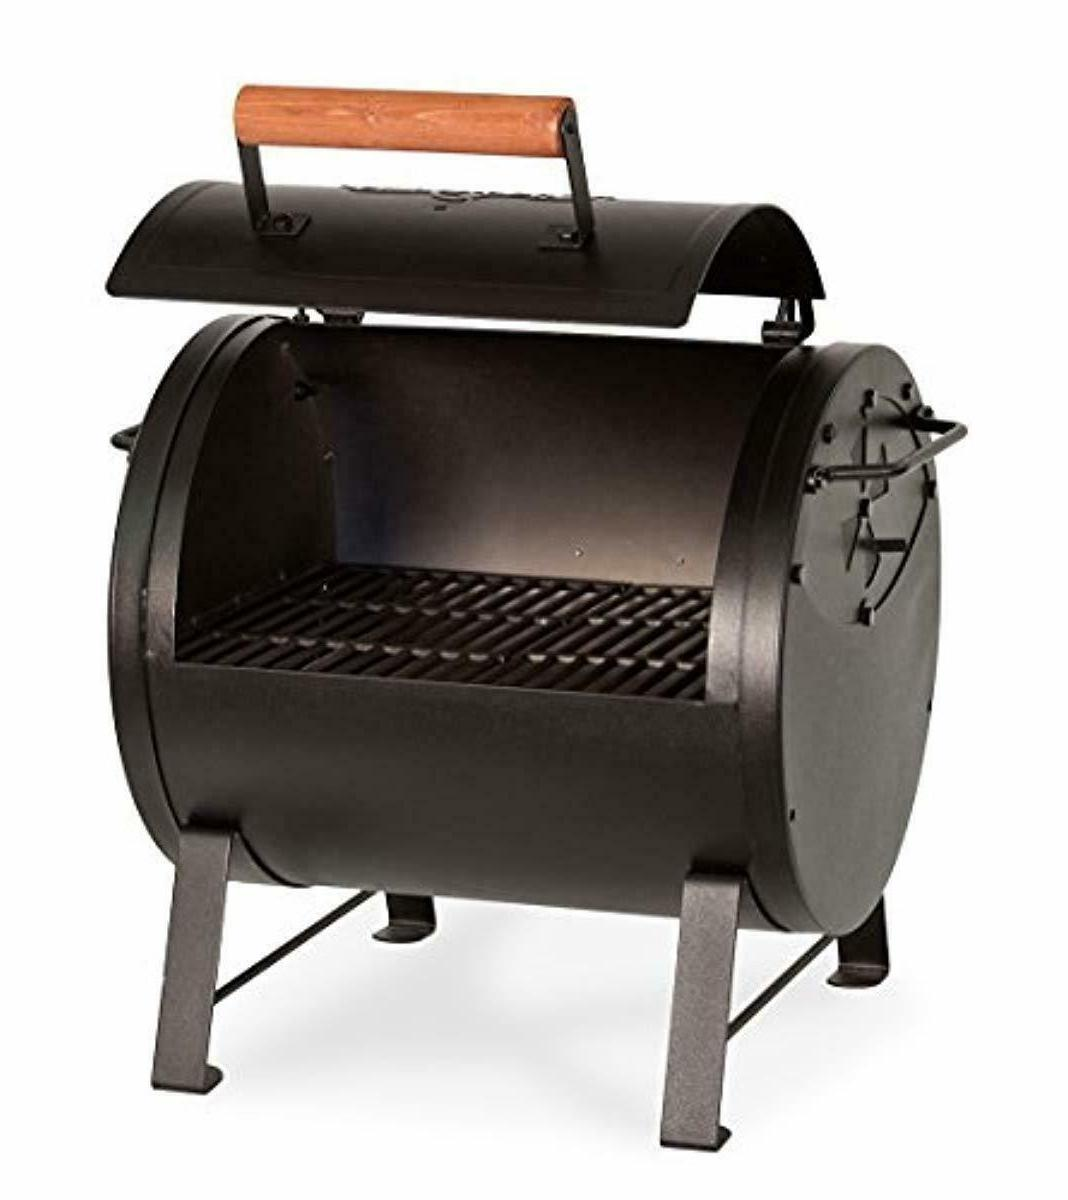 Char-Griller Top Charcoal Grill Fire